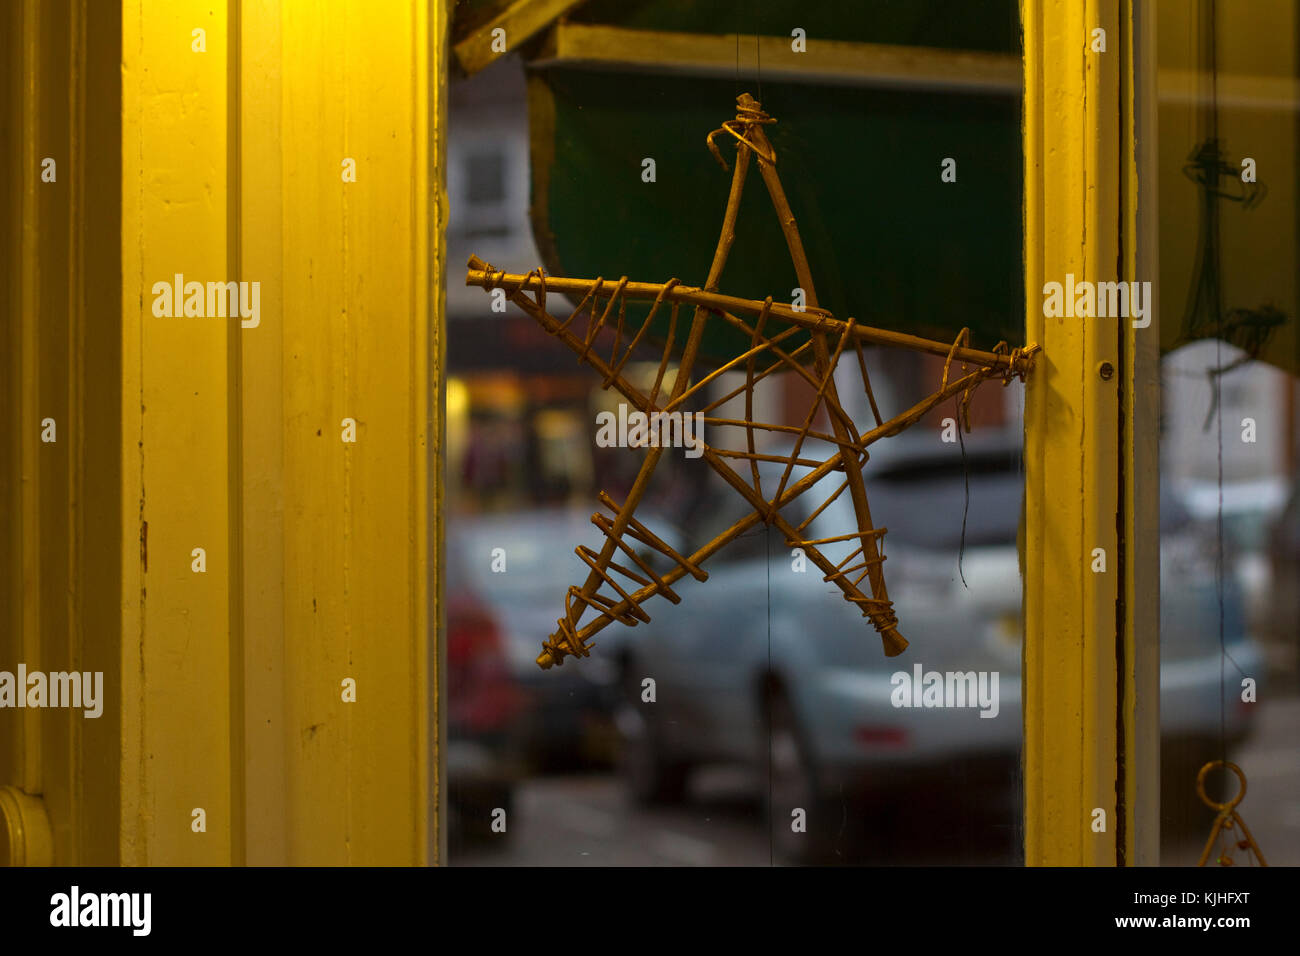 A wooden star hanging in a window for Cristmas - Stock Image